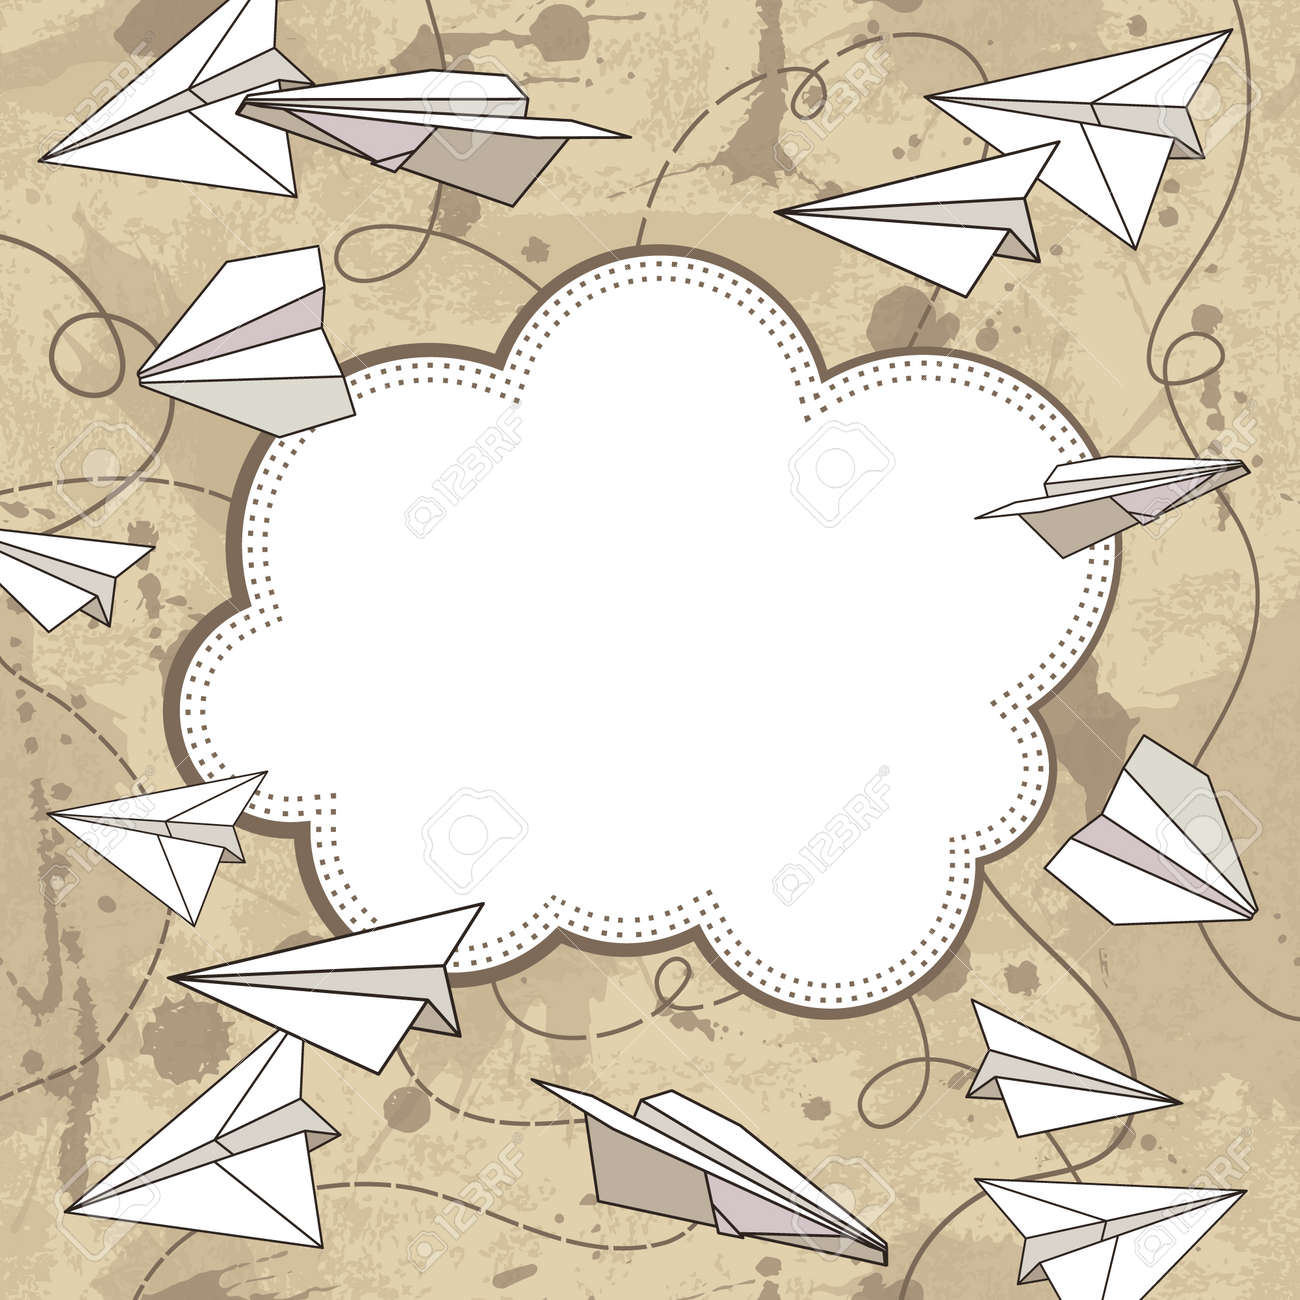 vector frame with paper planes - 32172041